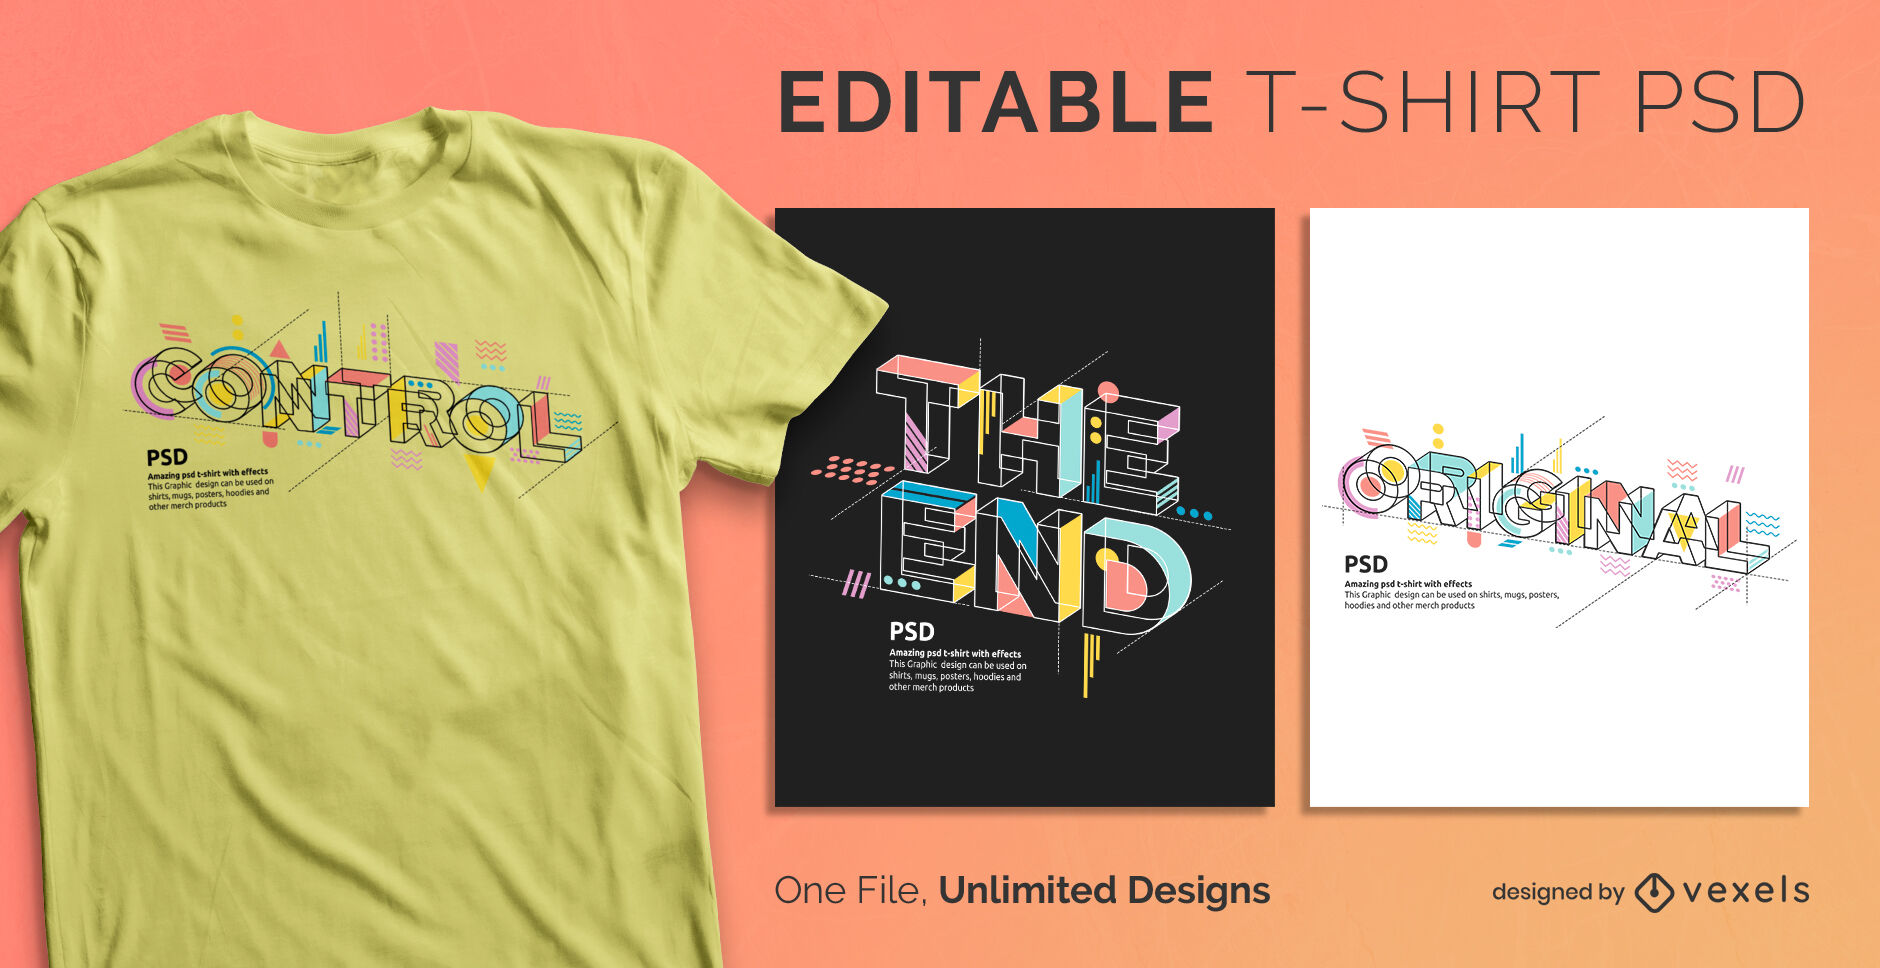 Geometric abstract text scalable psd t-shirt template